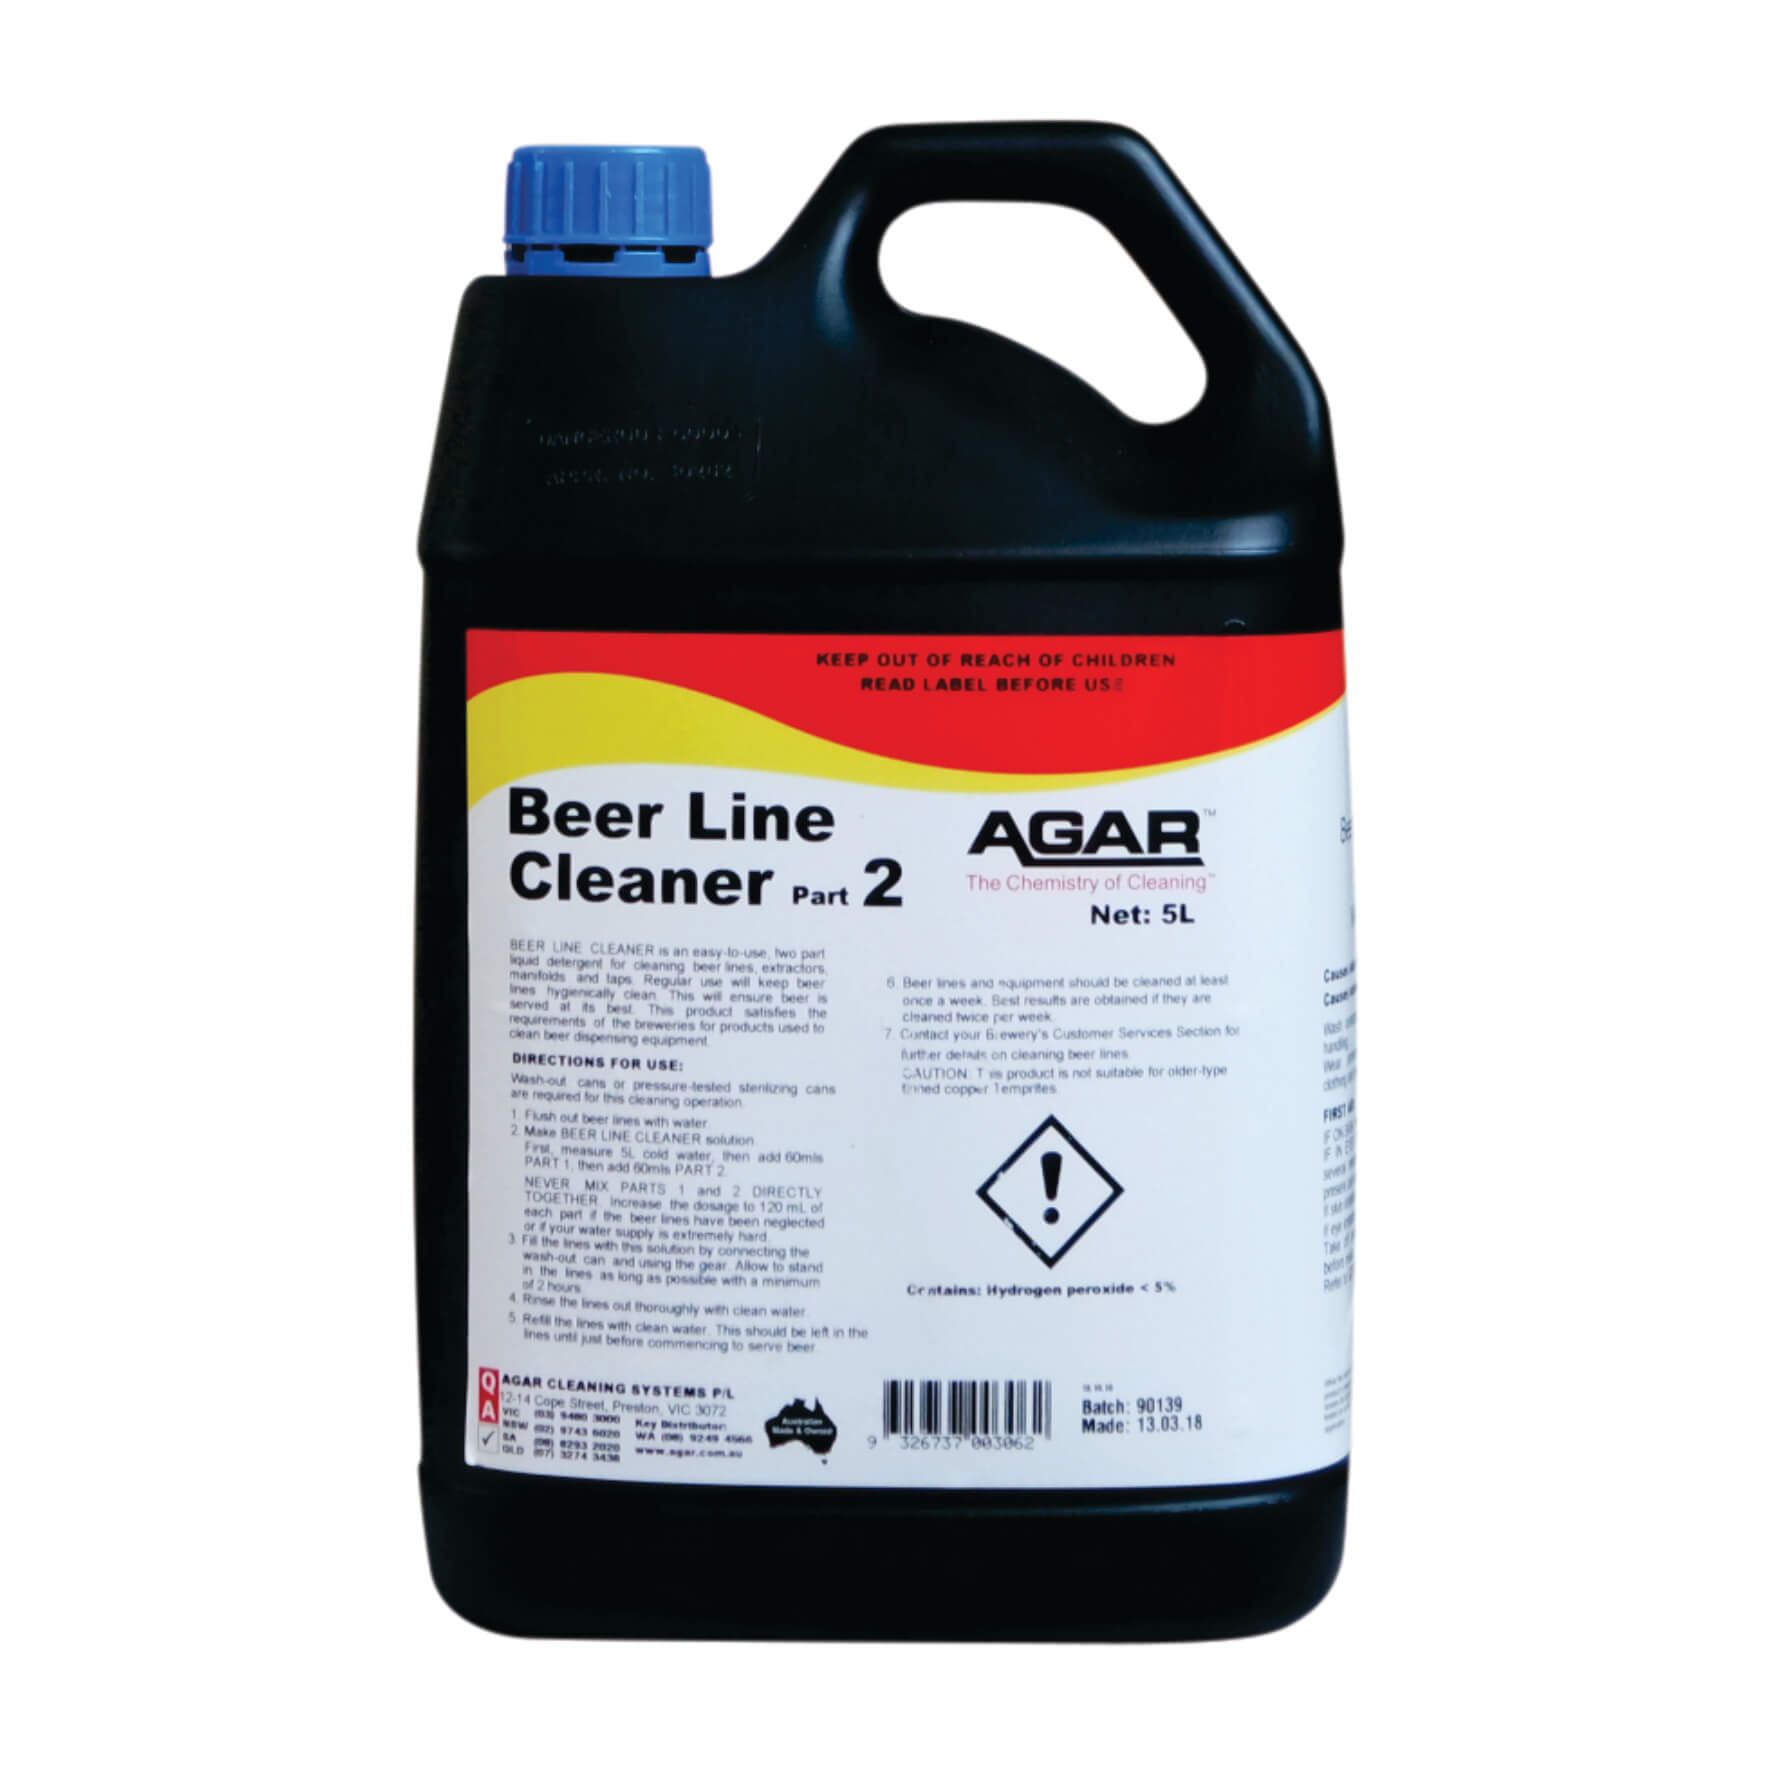 Beer Line Cleaner Liquid Detergent Agar Cleaning Systems